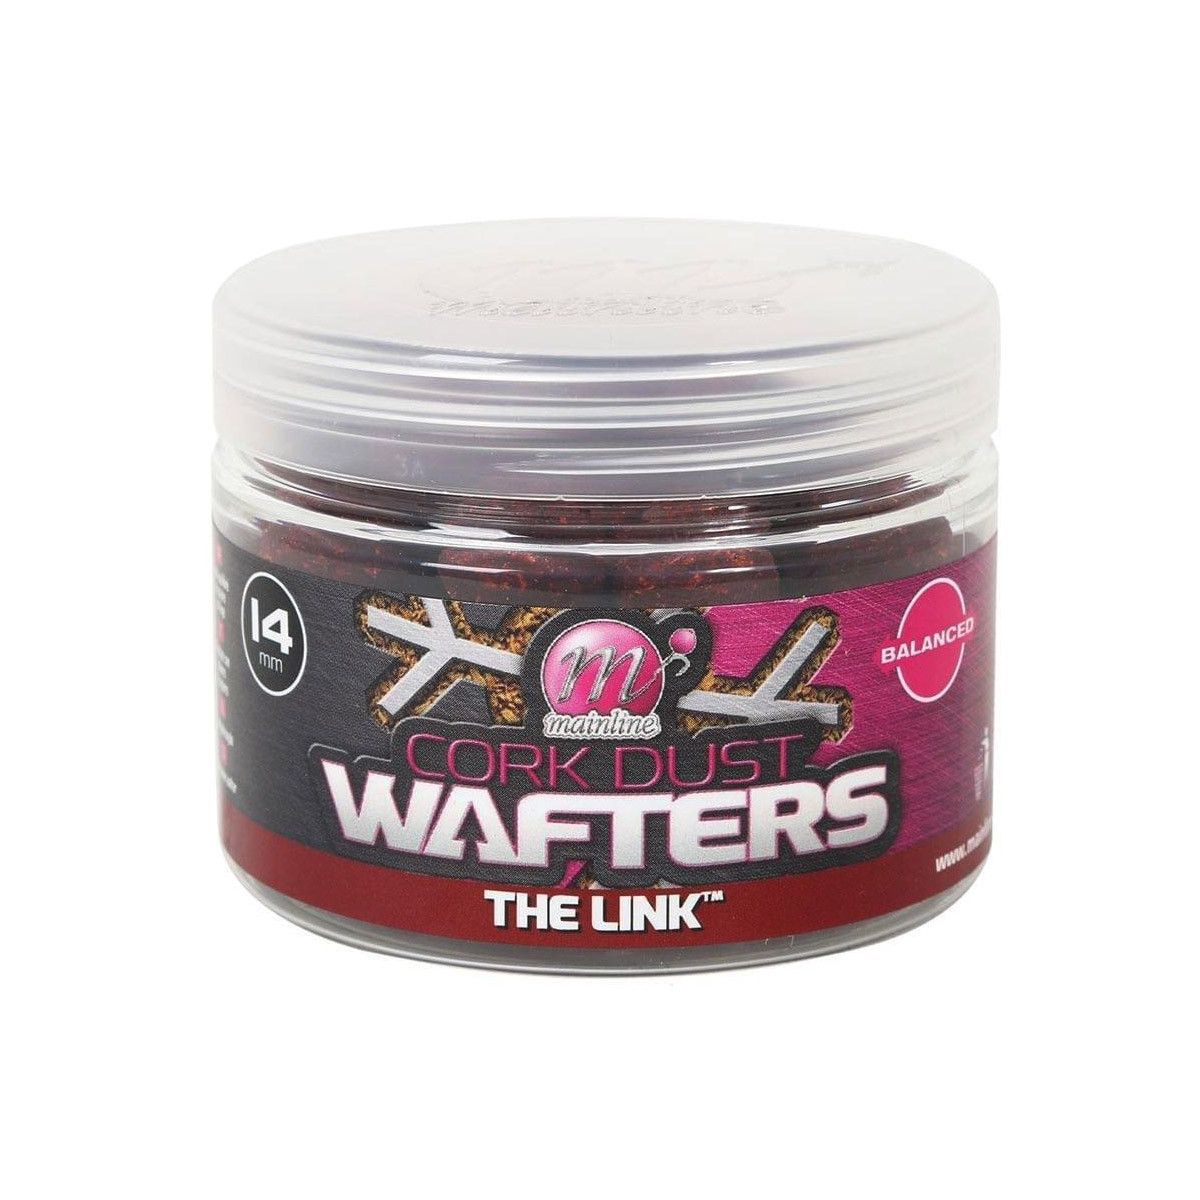 Mainline Cork Dust Wafters The Link 14 MM